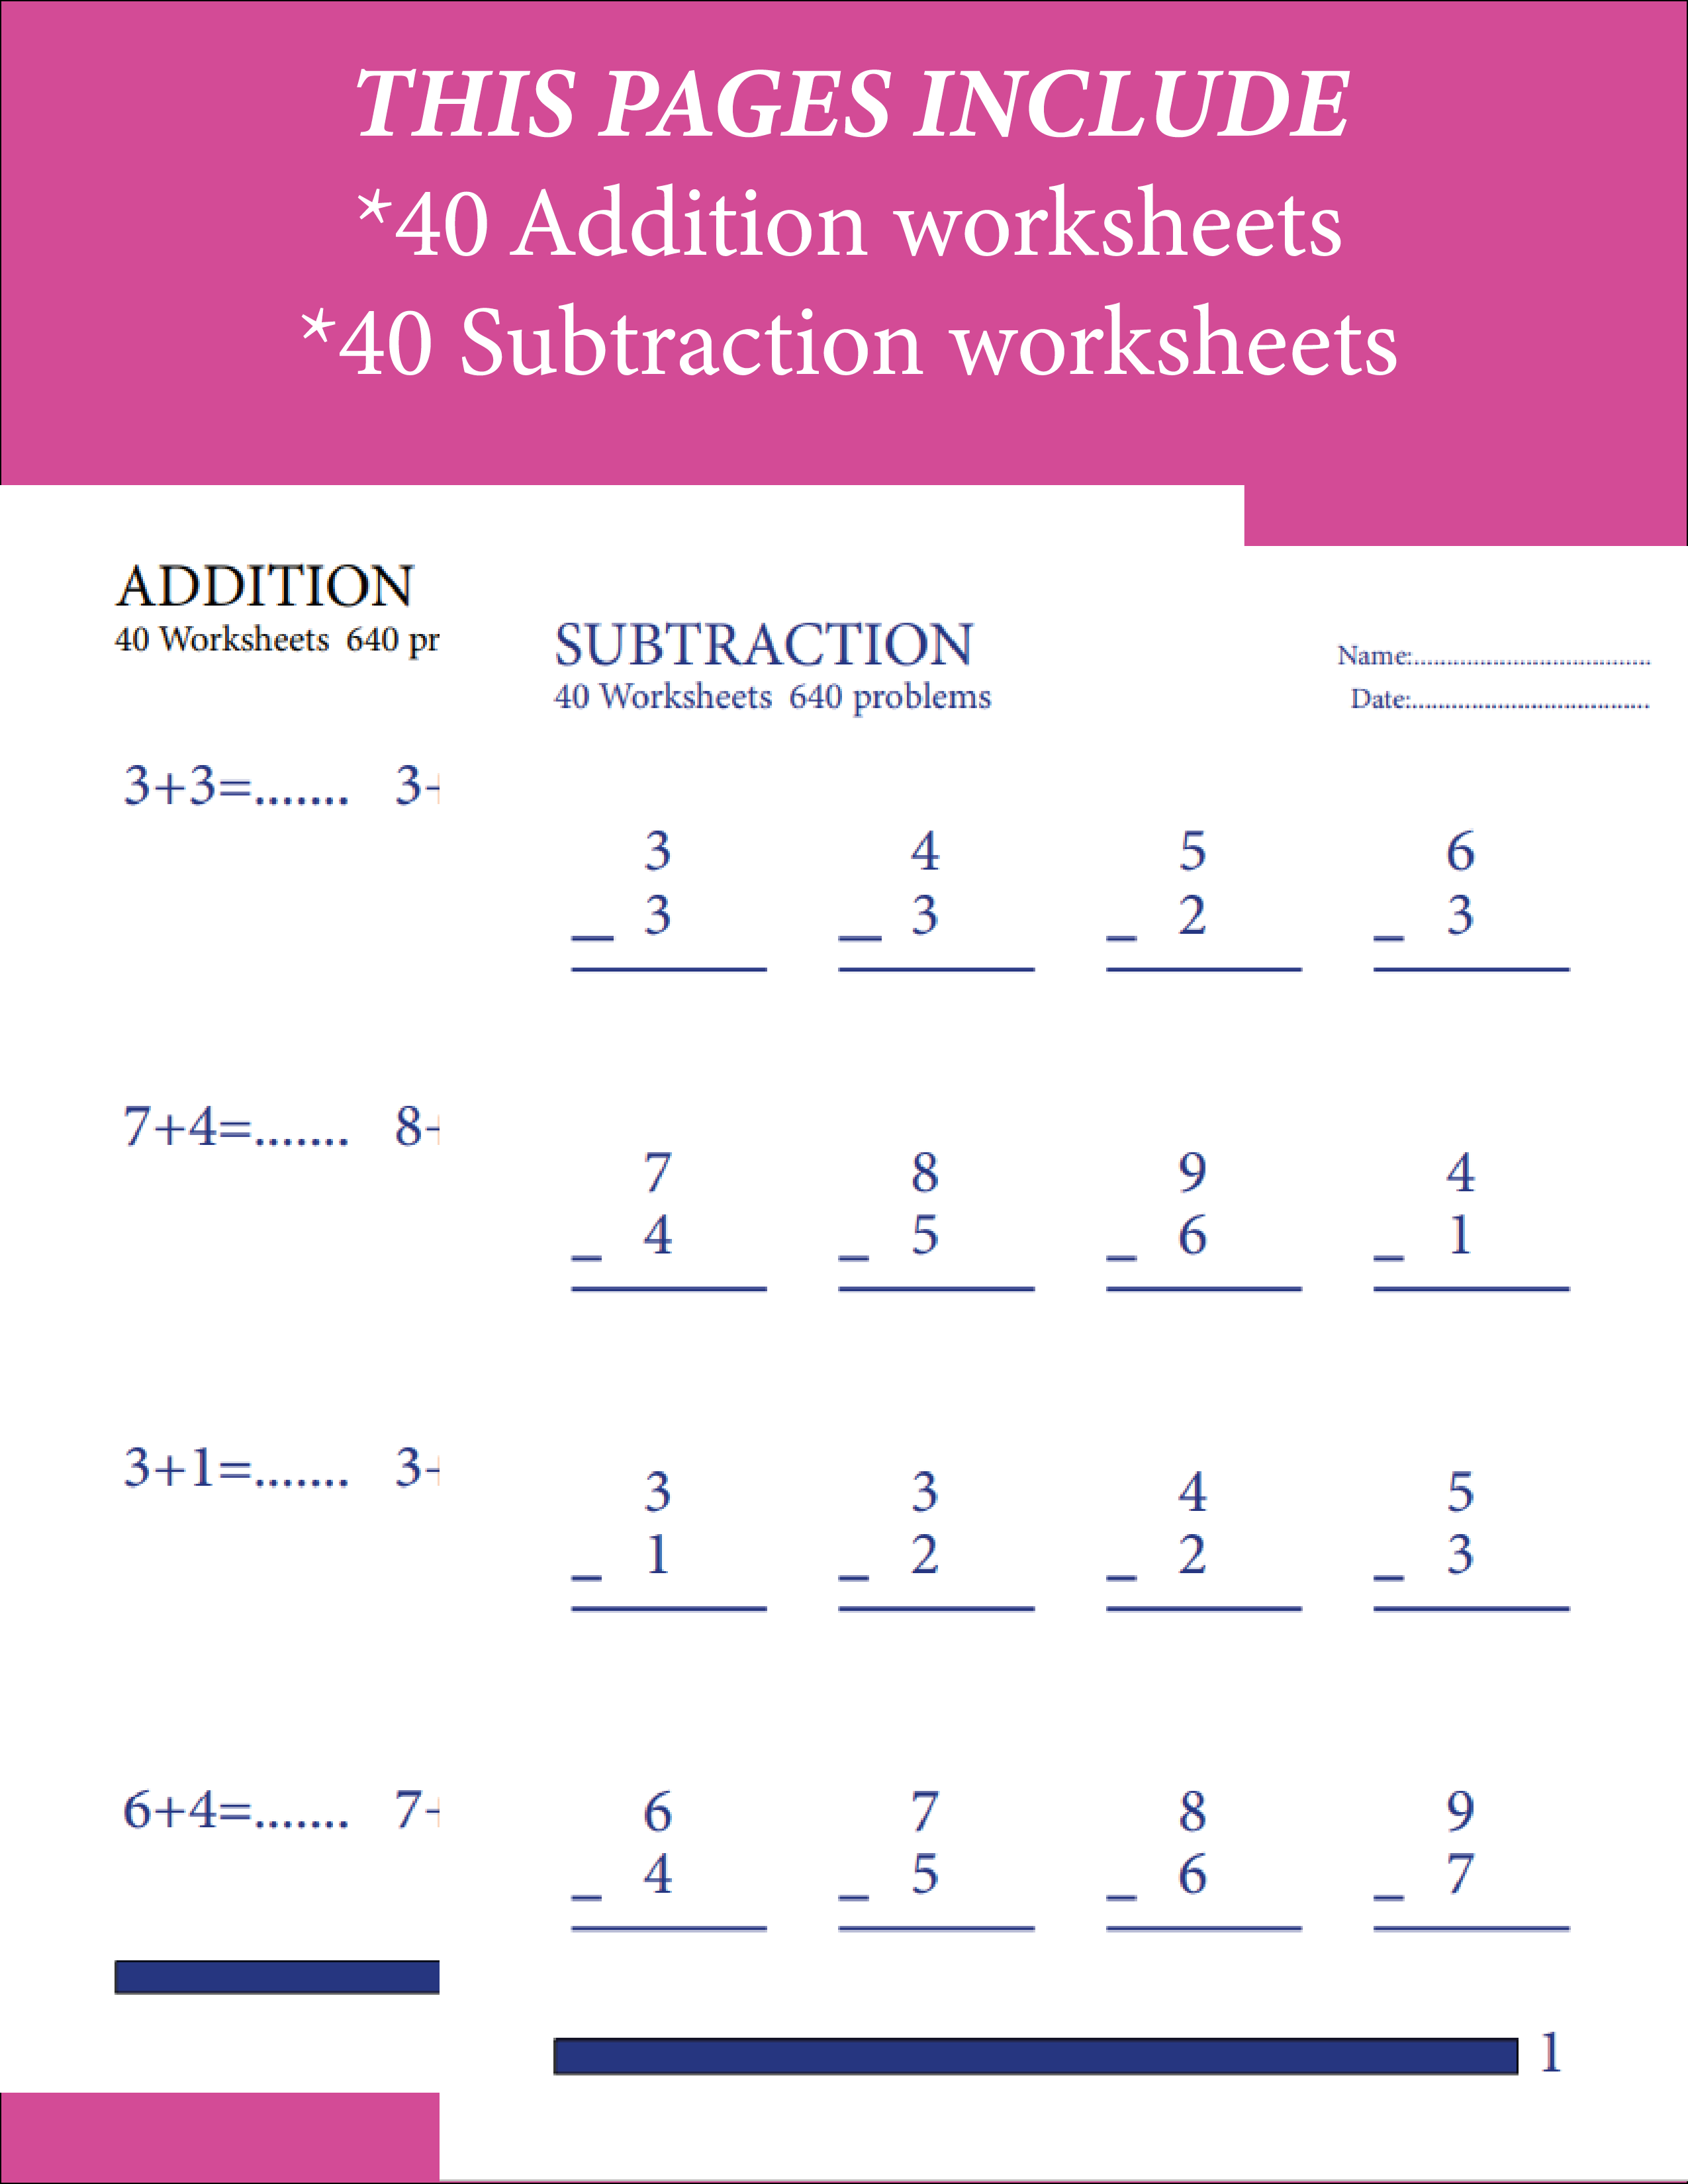 Addition Subtracrion Math 80 Worksheets 1280 Problems For Etsy Math Subtraction Worksheets Math Addition Worksheets Addition And Subtraction Worksheets [ 3300 x 2550 Pixel ]